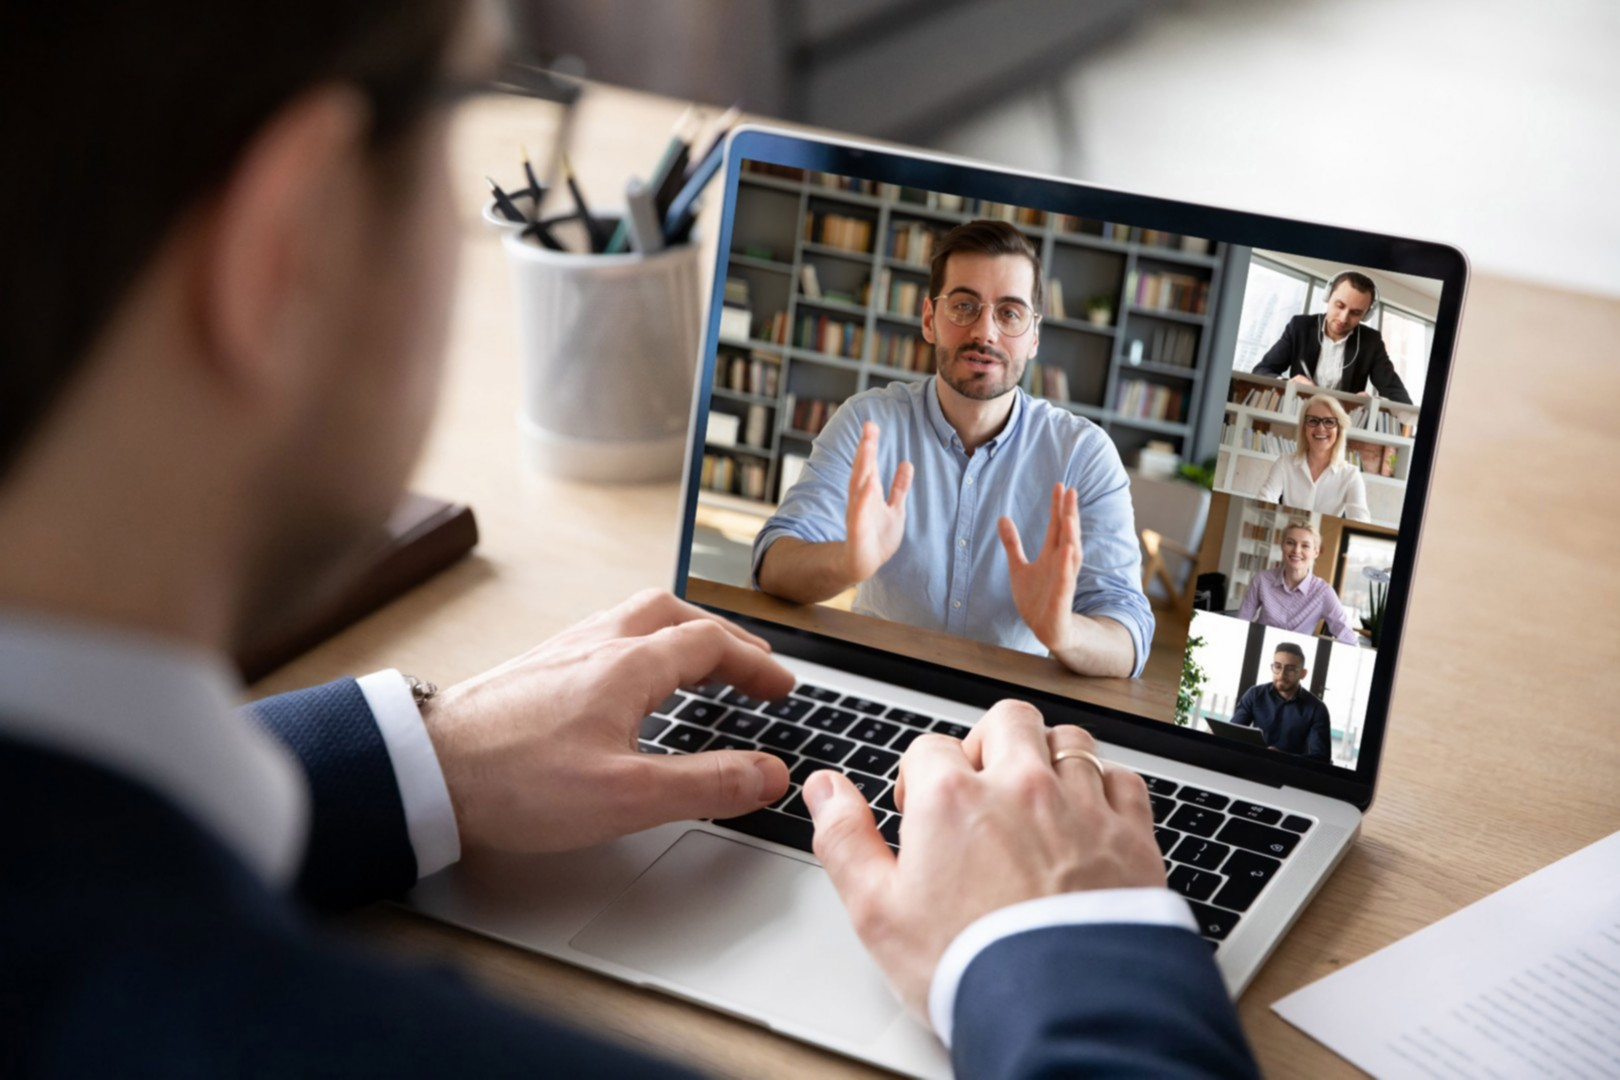 EY - Business man participating in a videocall